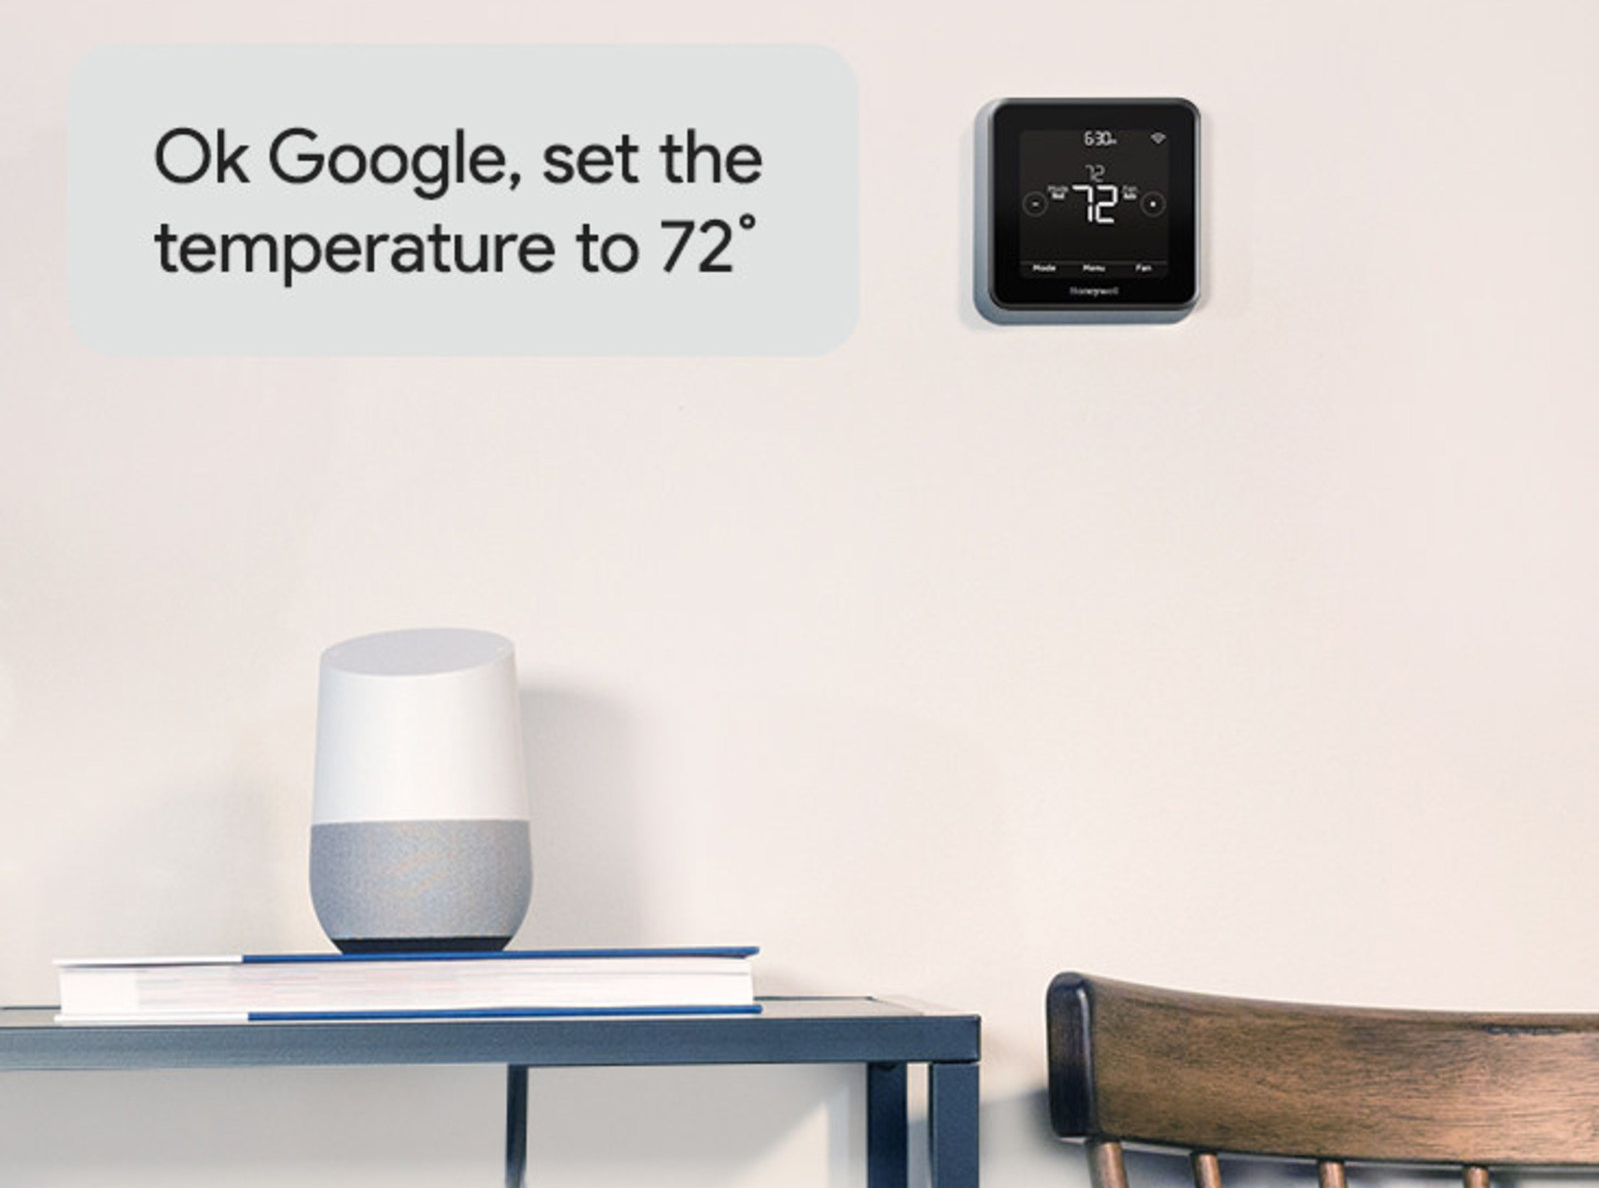 Honeywell smart thermostats now support Google Assistant